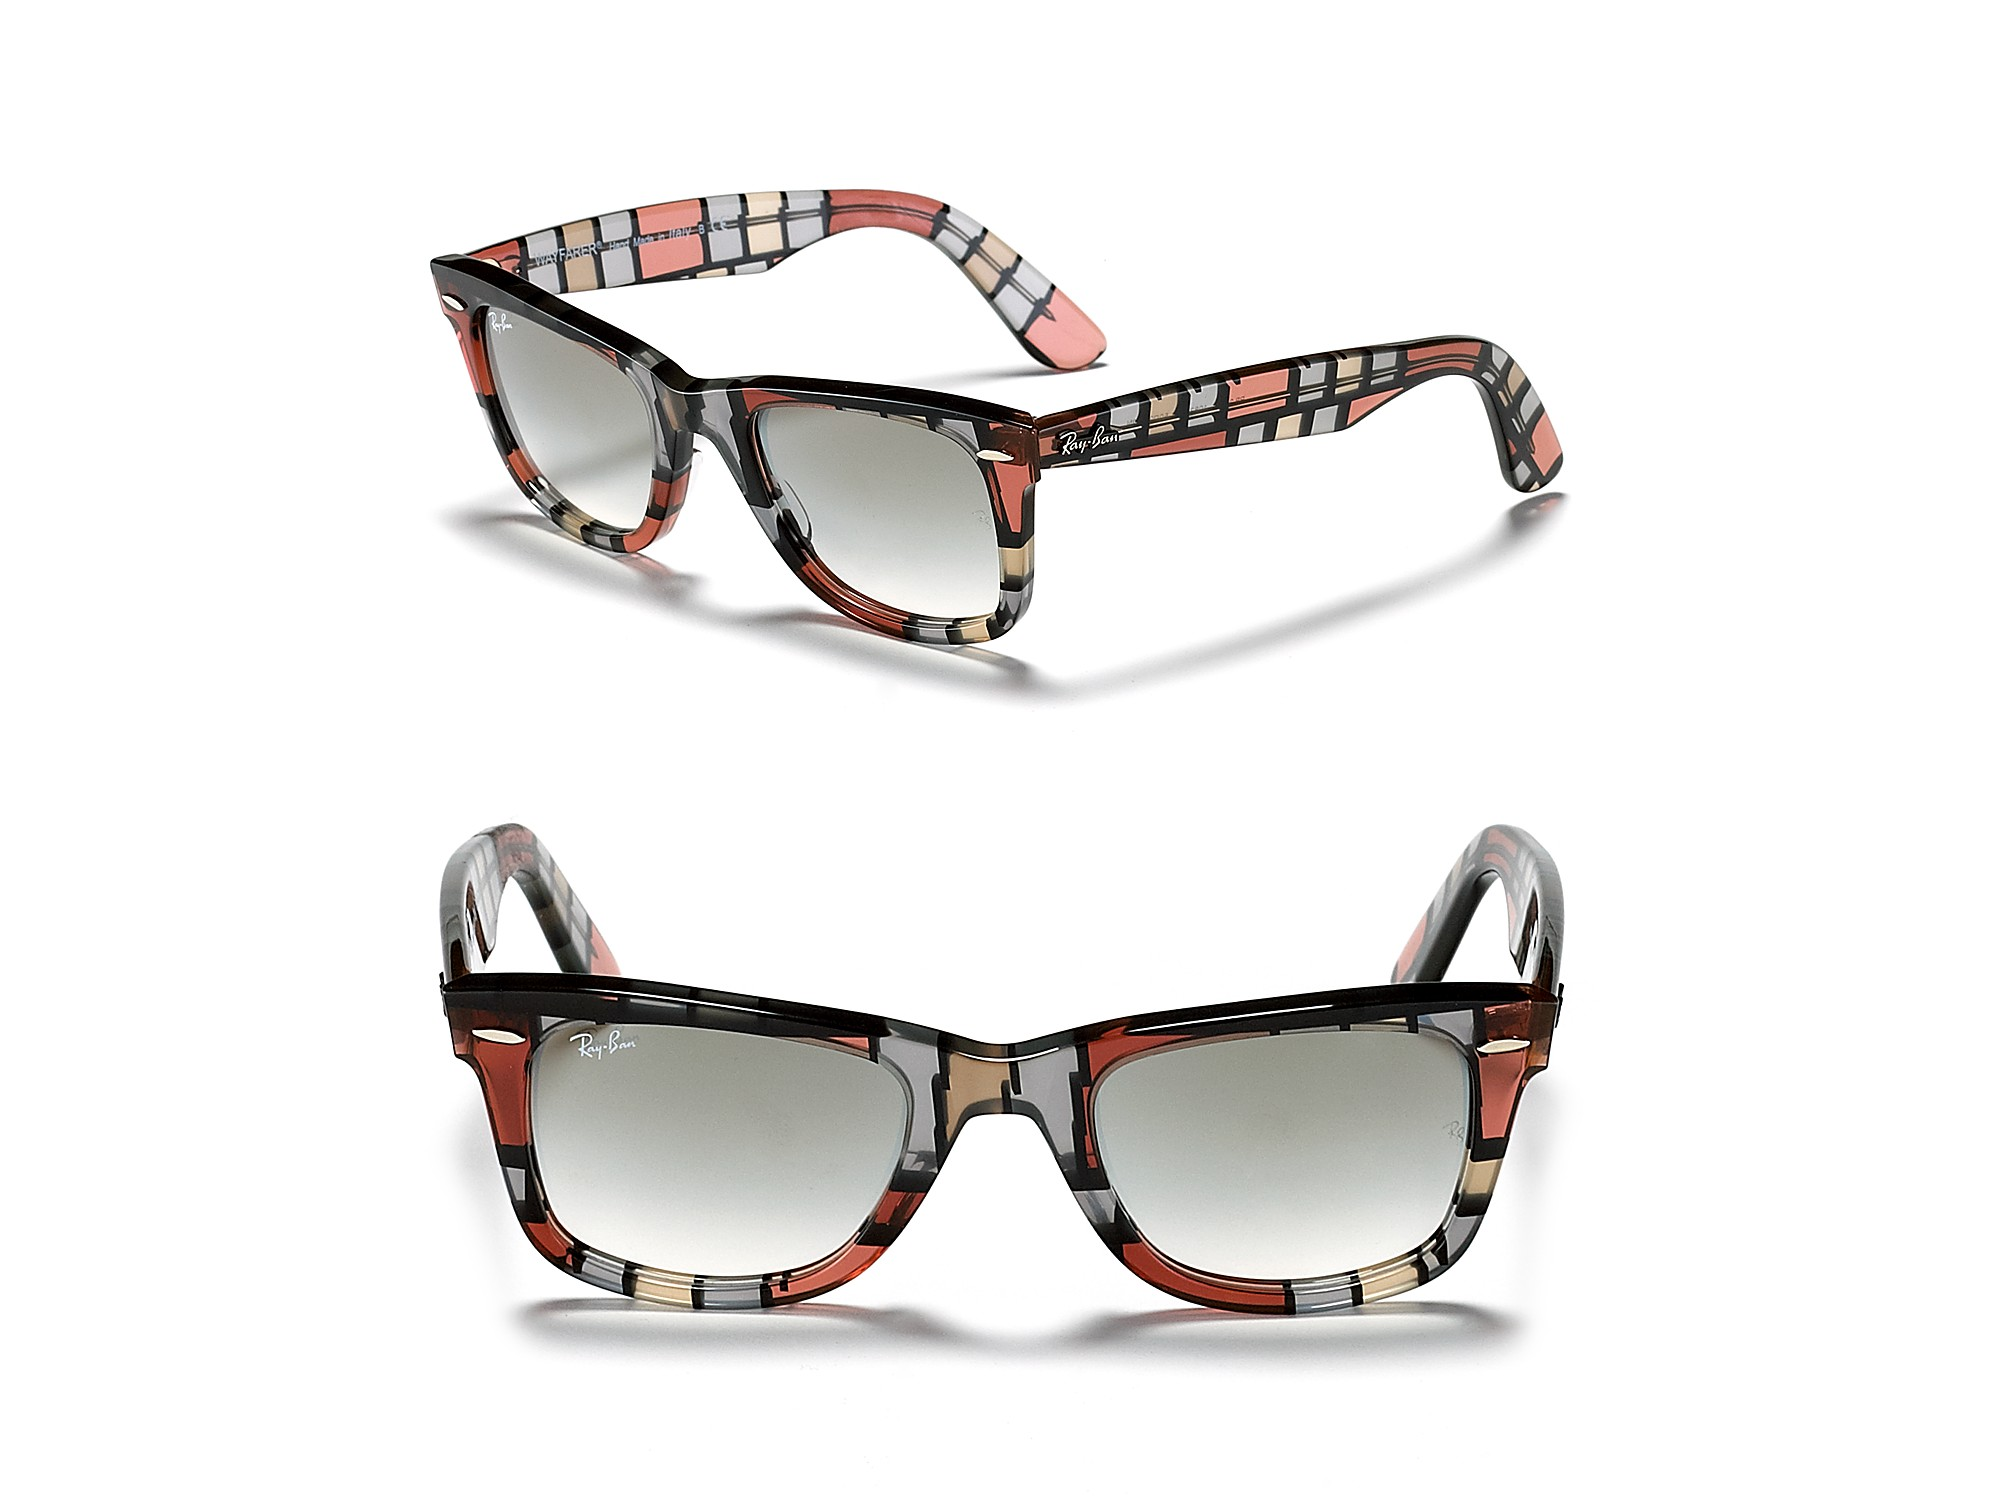 ray ban classic wayfarer sunglasses sale  gallery. previously sold at: bloomingdale's · men's wayfarer sunglasses